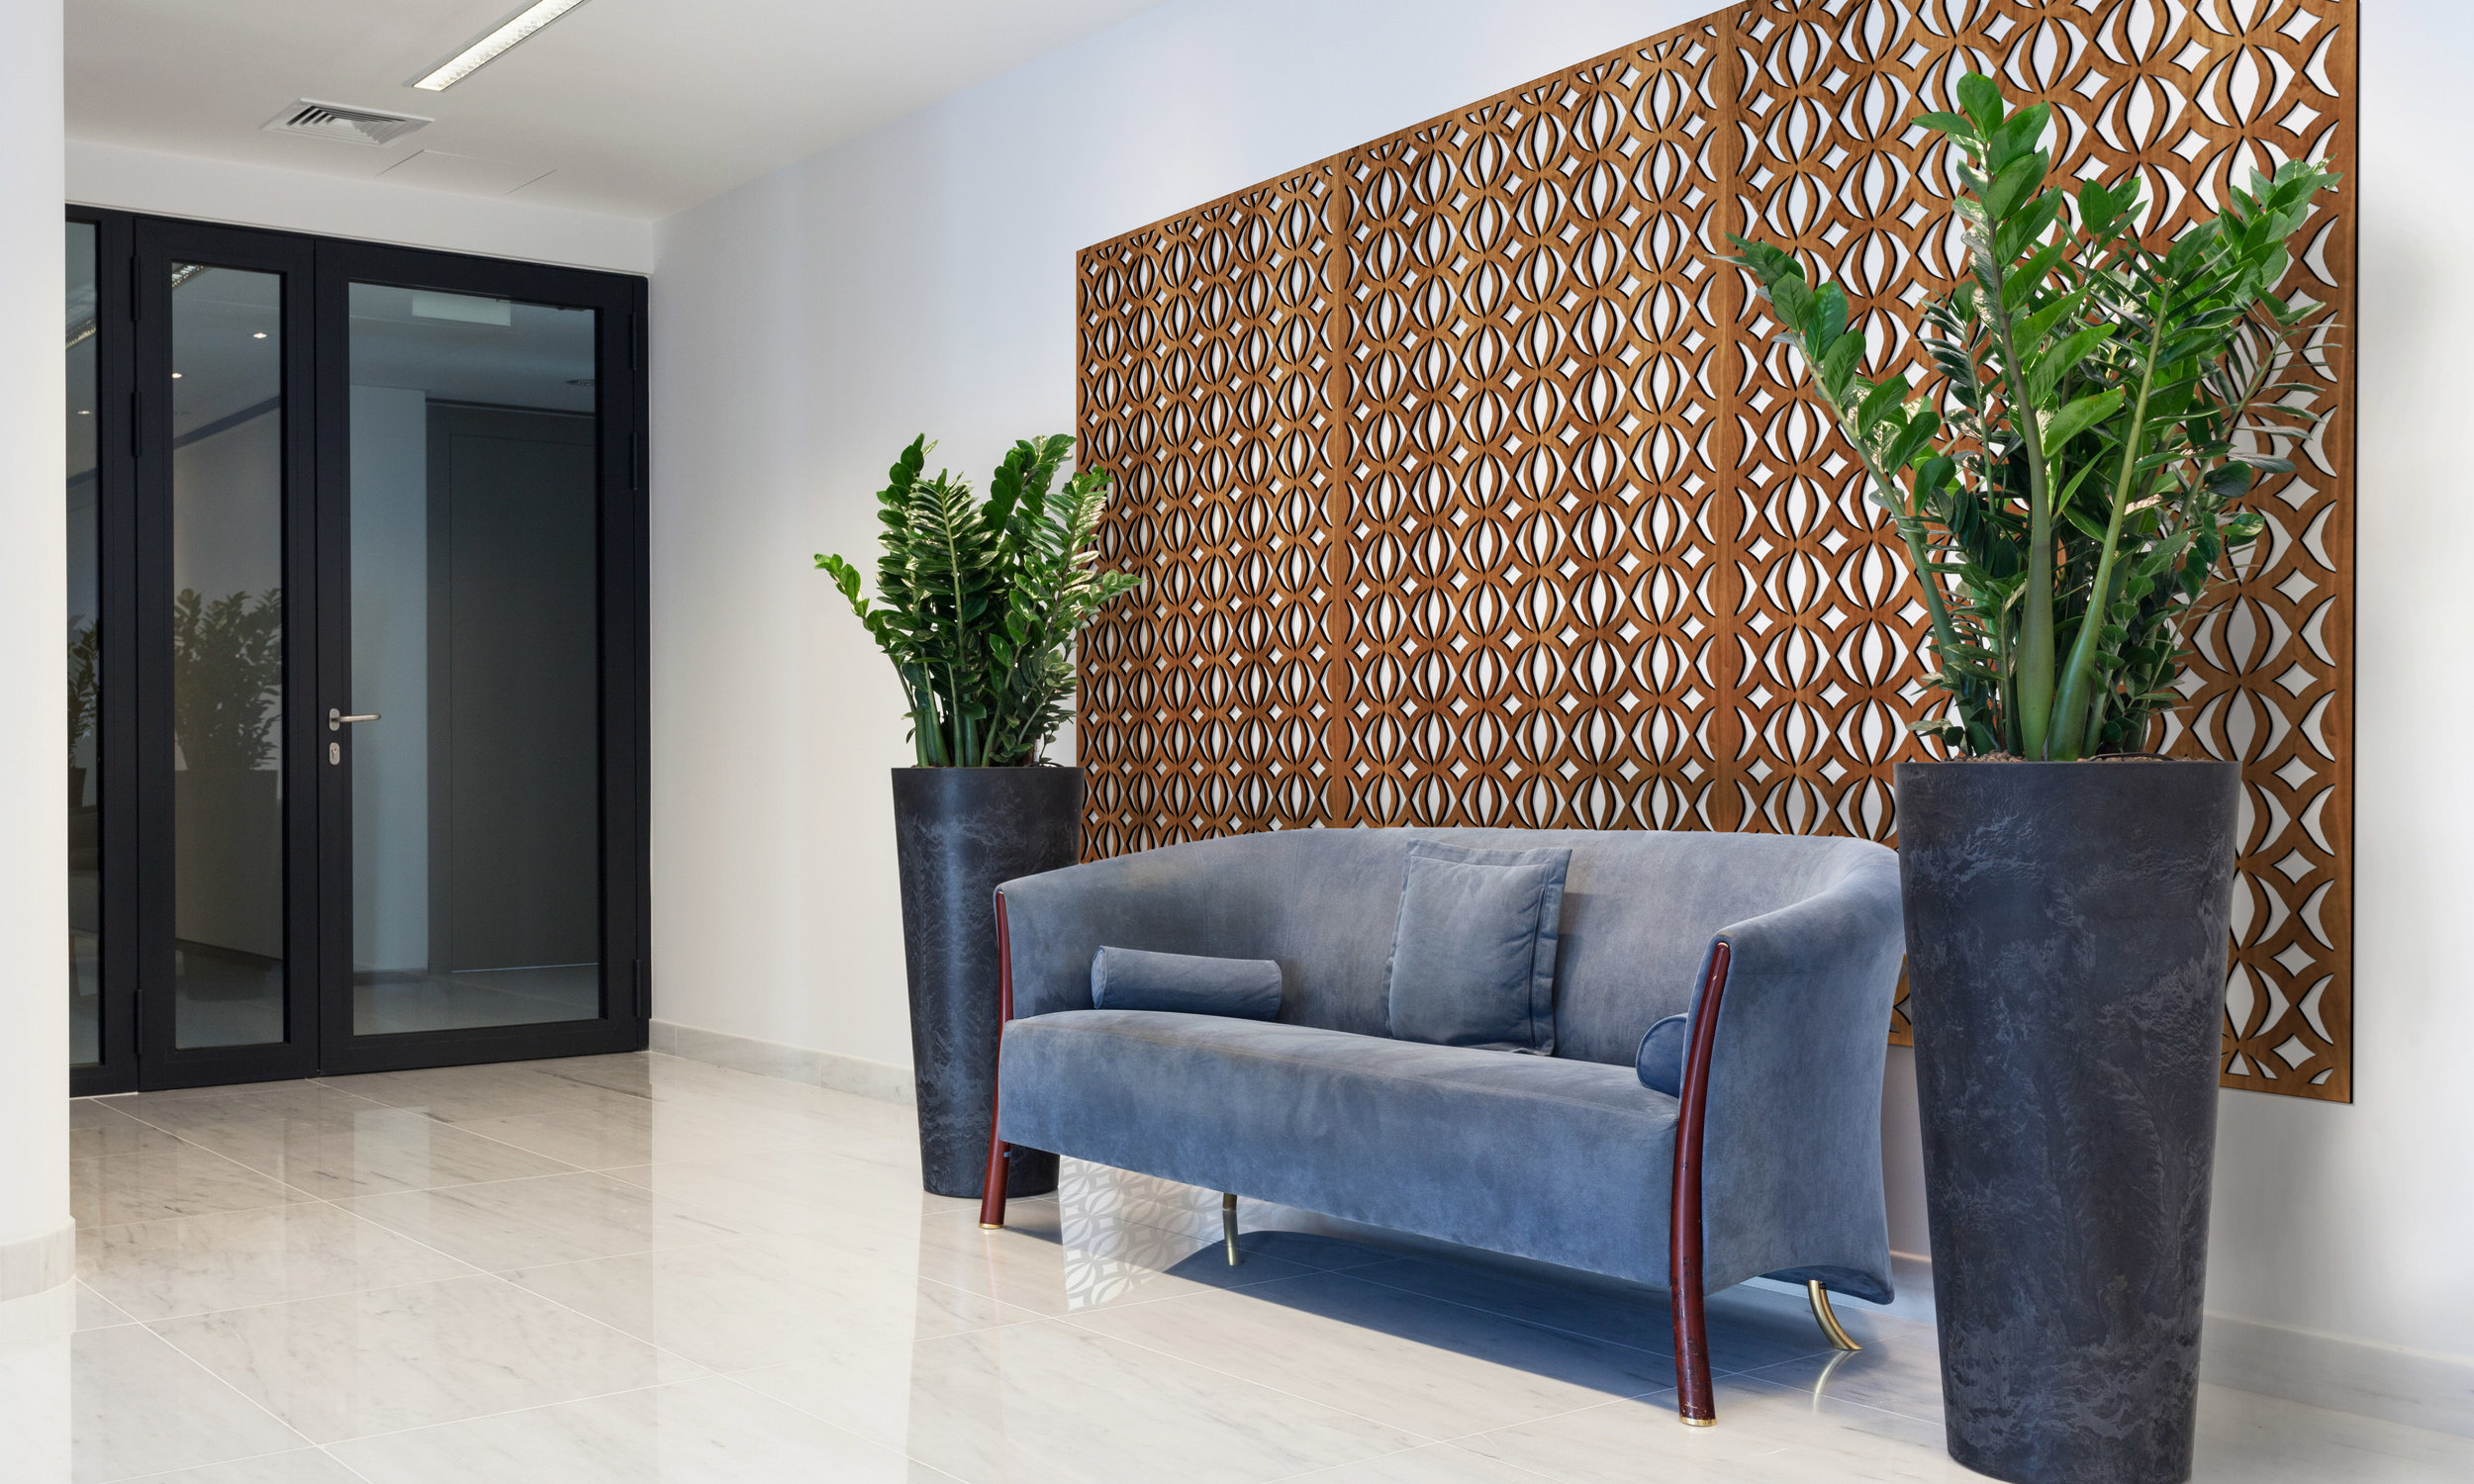 Installation Rendering A   Corcovado decorative office wall panel - shown in Cherry